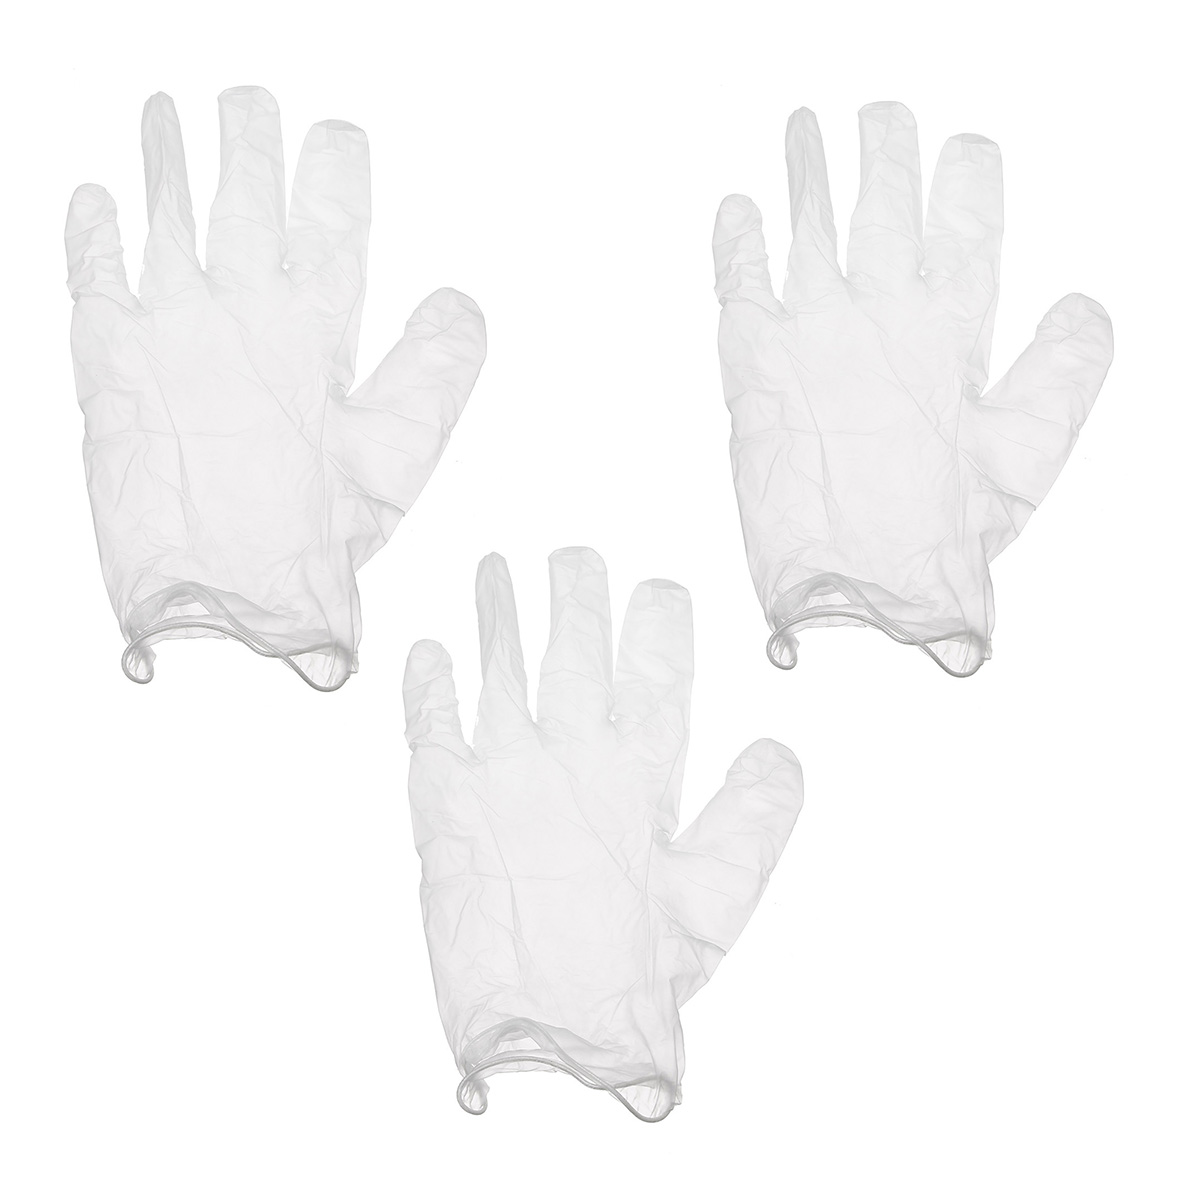 100pcs Tattoo Disposable Thick Elastic Texture Antiskid Chemical Defense Gloves